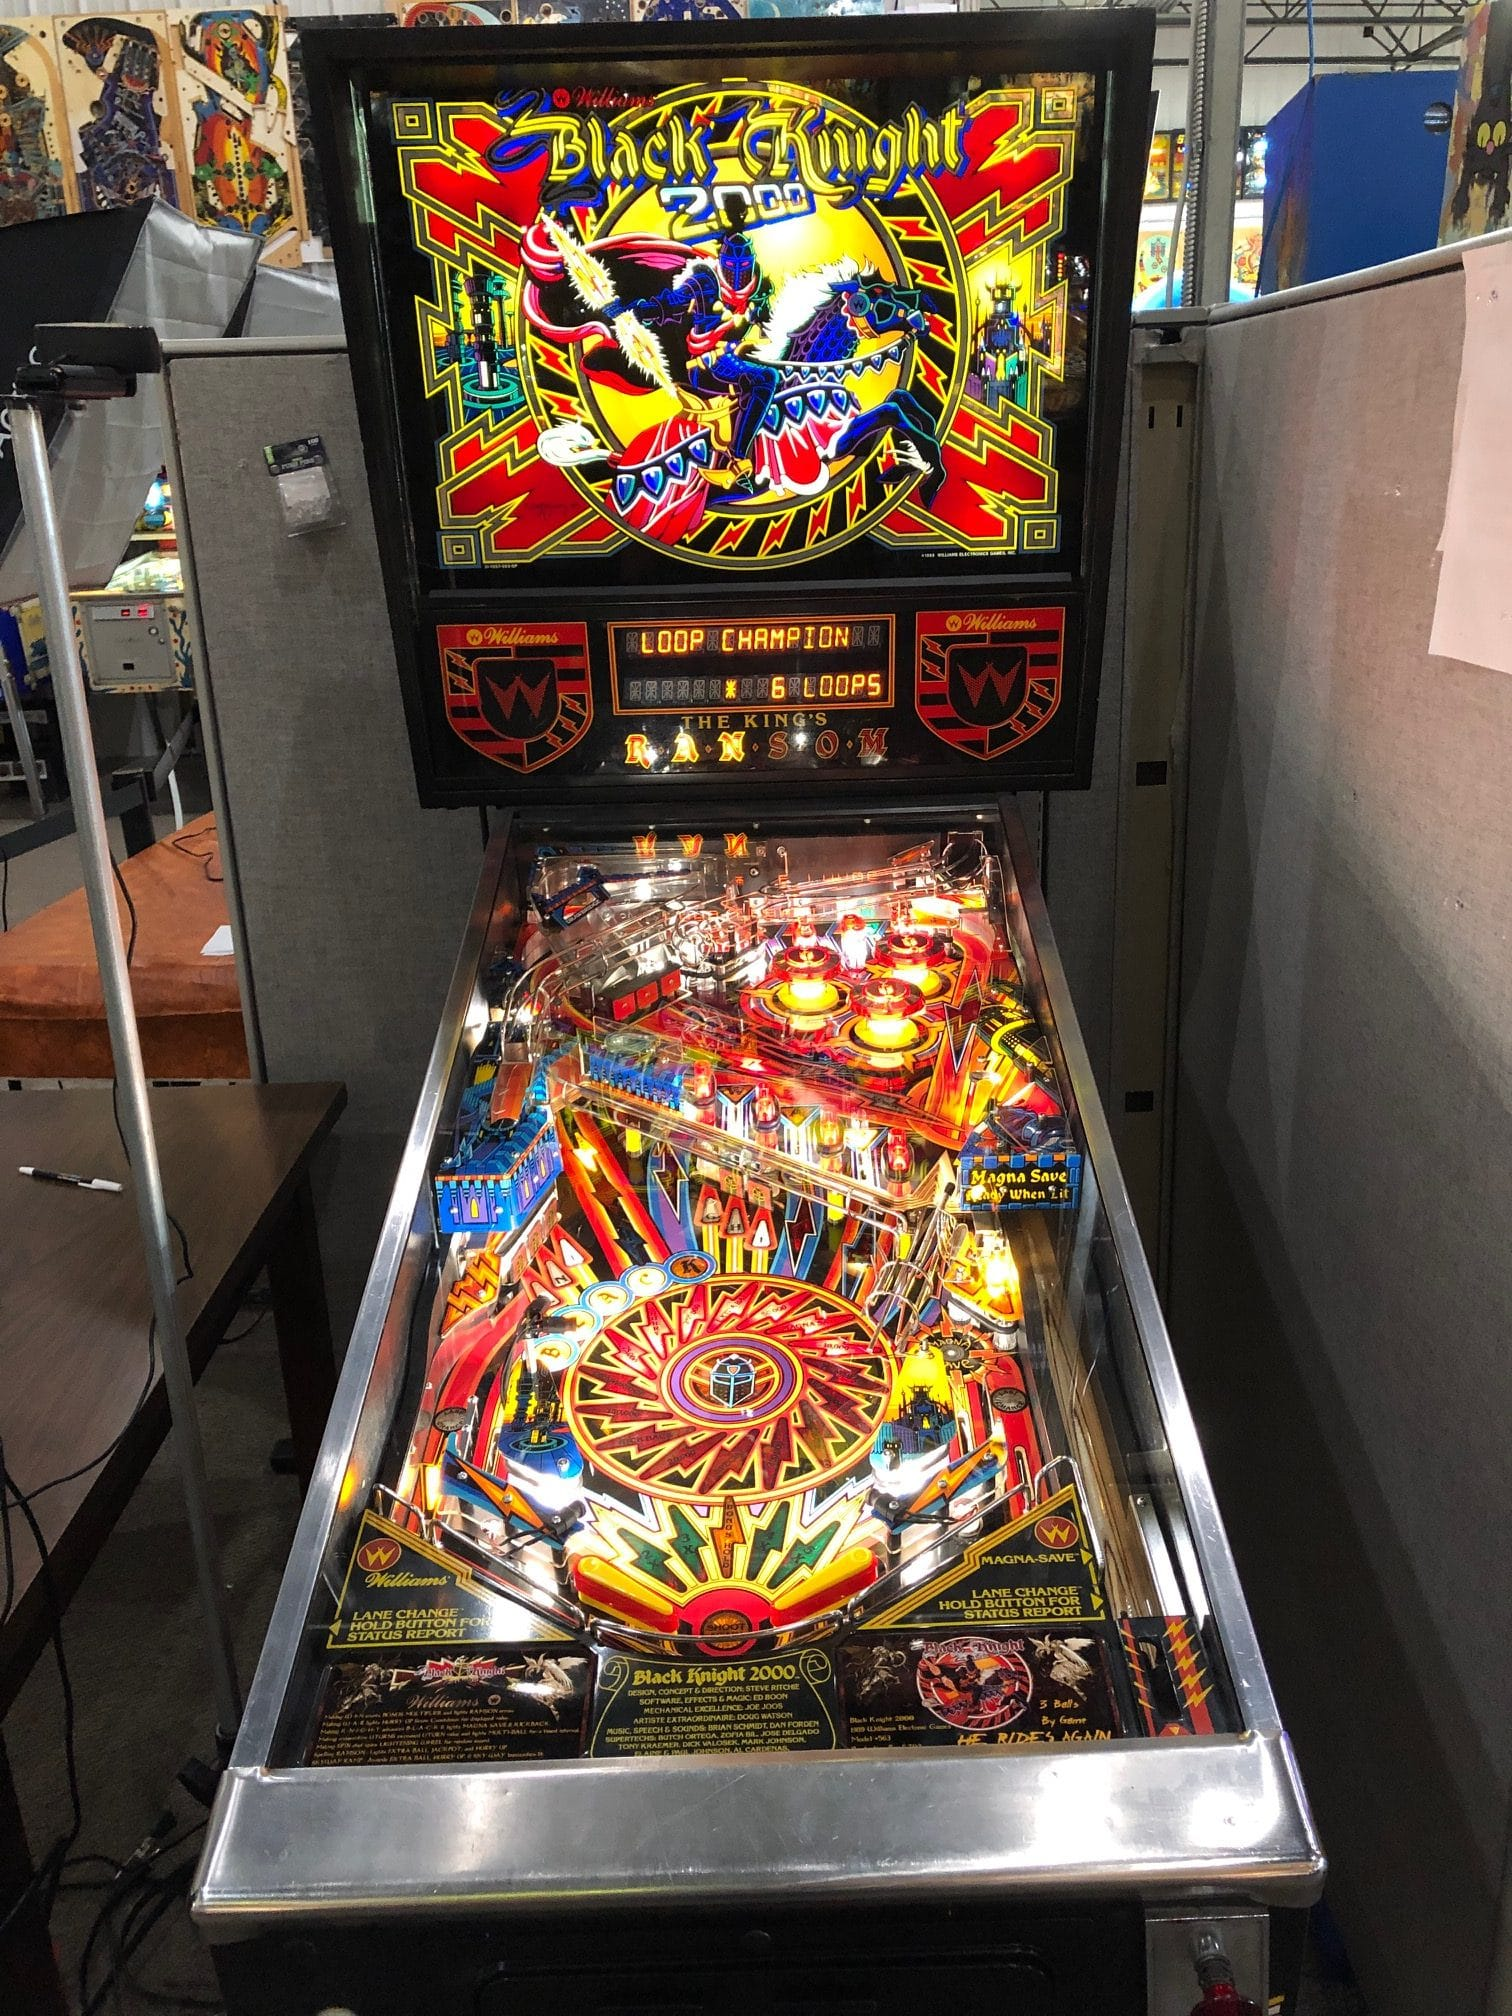 Black Knight 2000 Pinball Machine in Green Bay, WI BK2K.